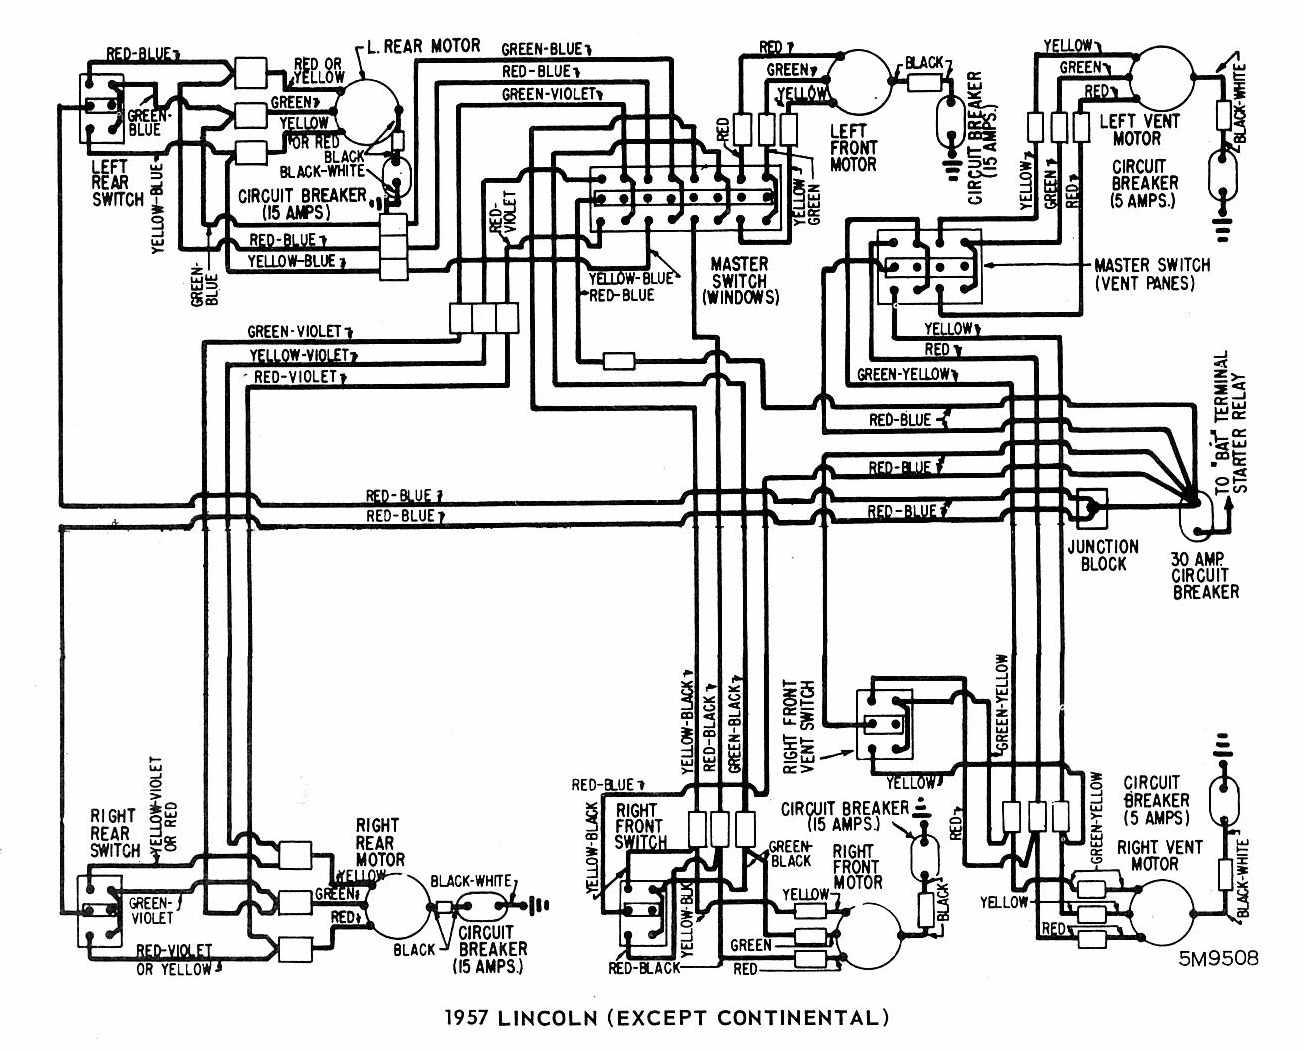 hight resolution of 1962 lincoln wiring diagram free wiring diagram for you u2022 lincoln vantage 500 wiring diagram lincoln wiring diagram